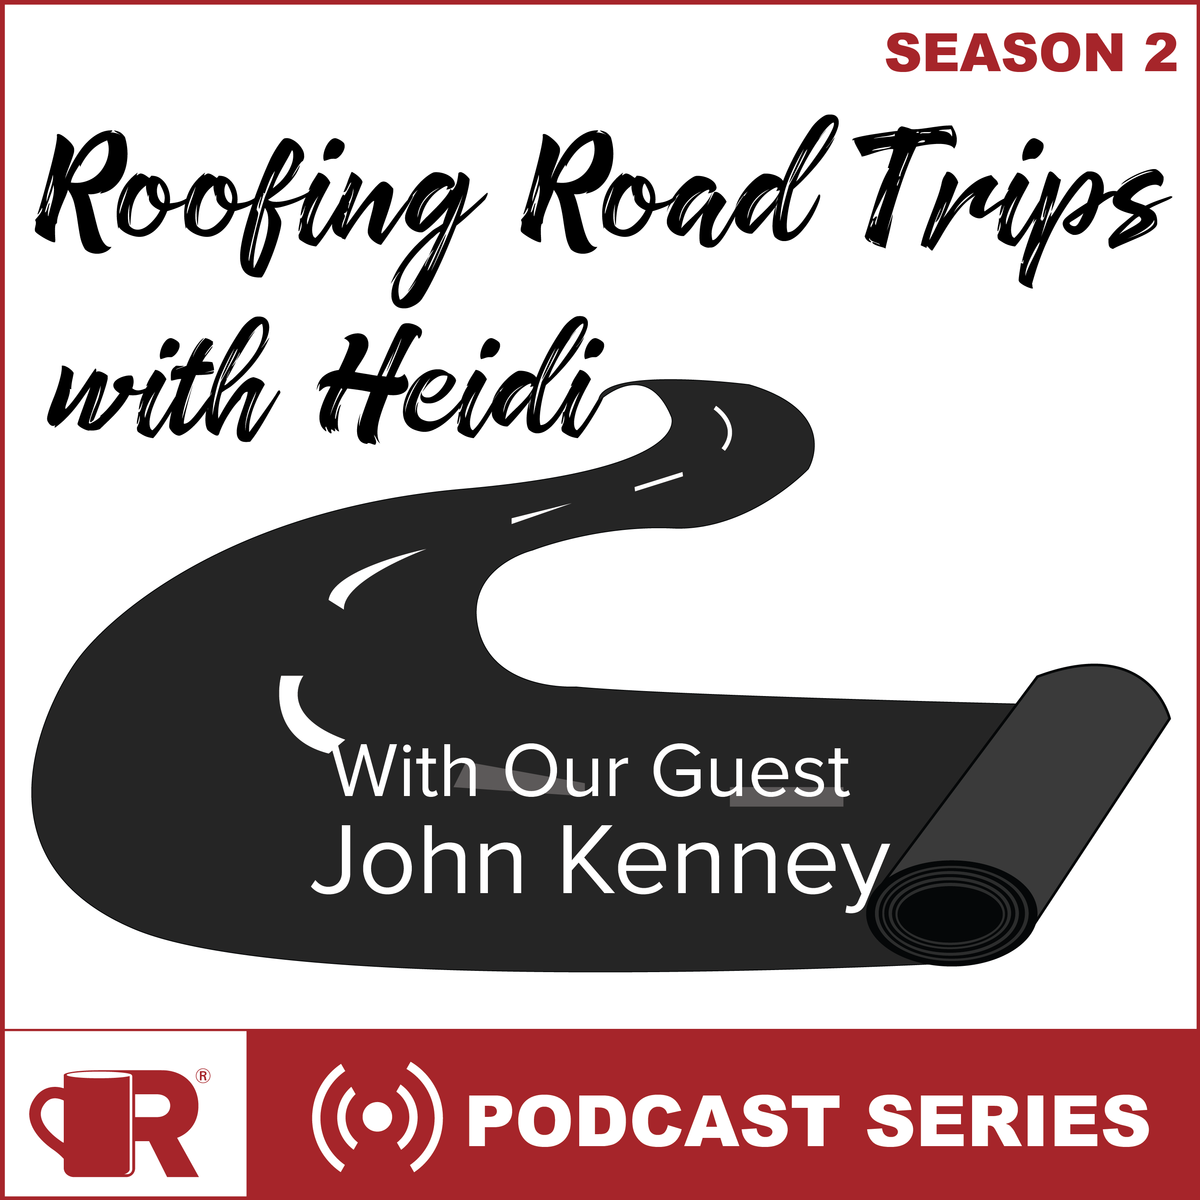 Roofing Road Trip with John Kenney